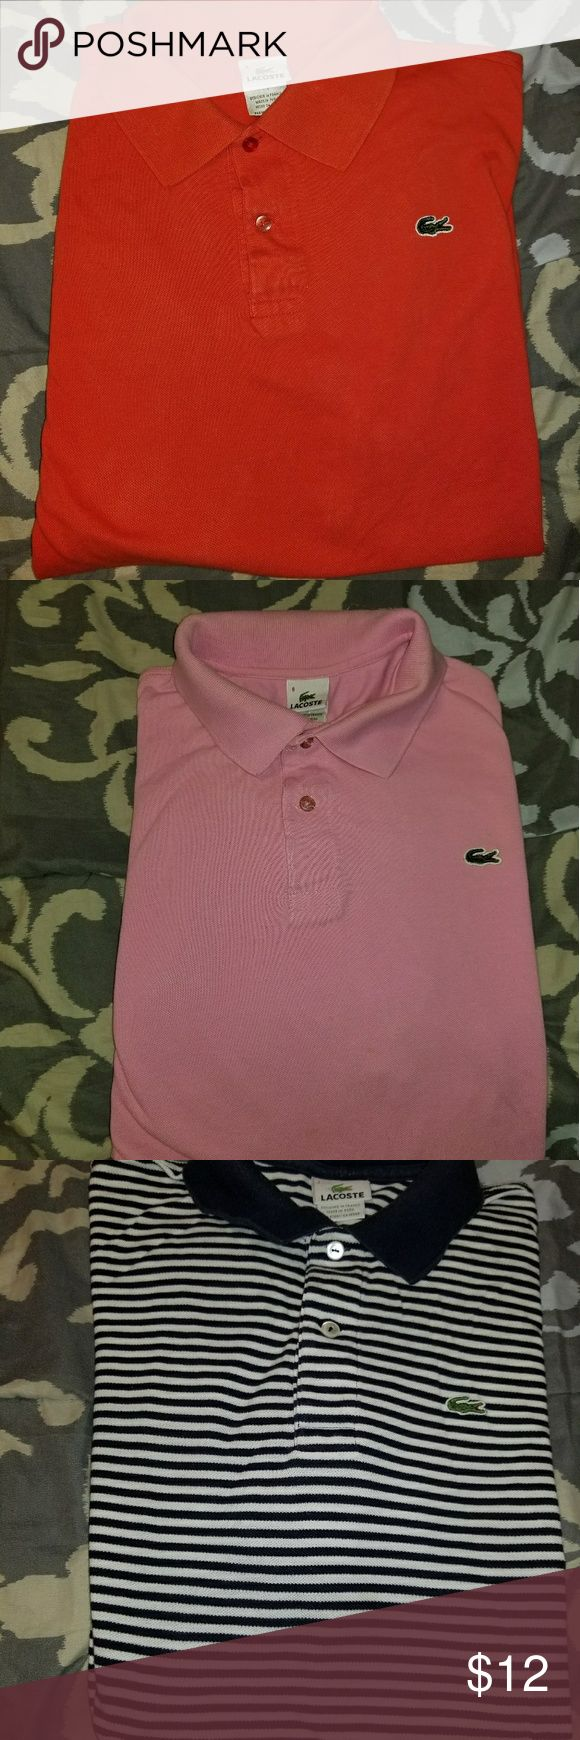 Lacoste  Polo Shirts Men's Polos in good shape Lacoste Shirts Polos